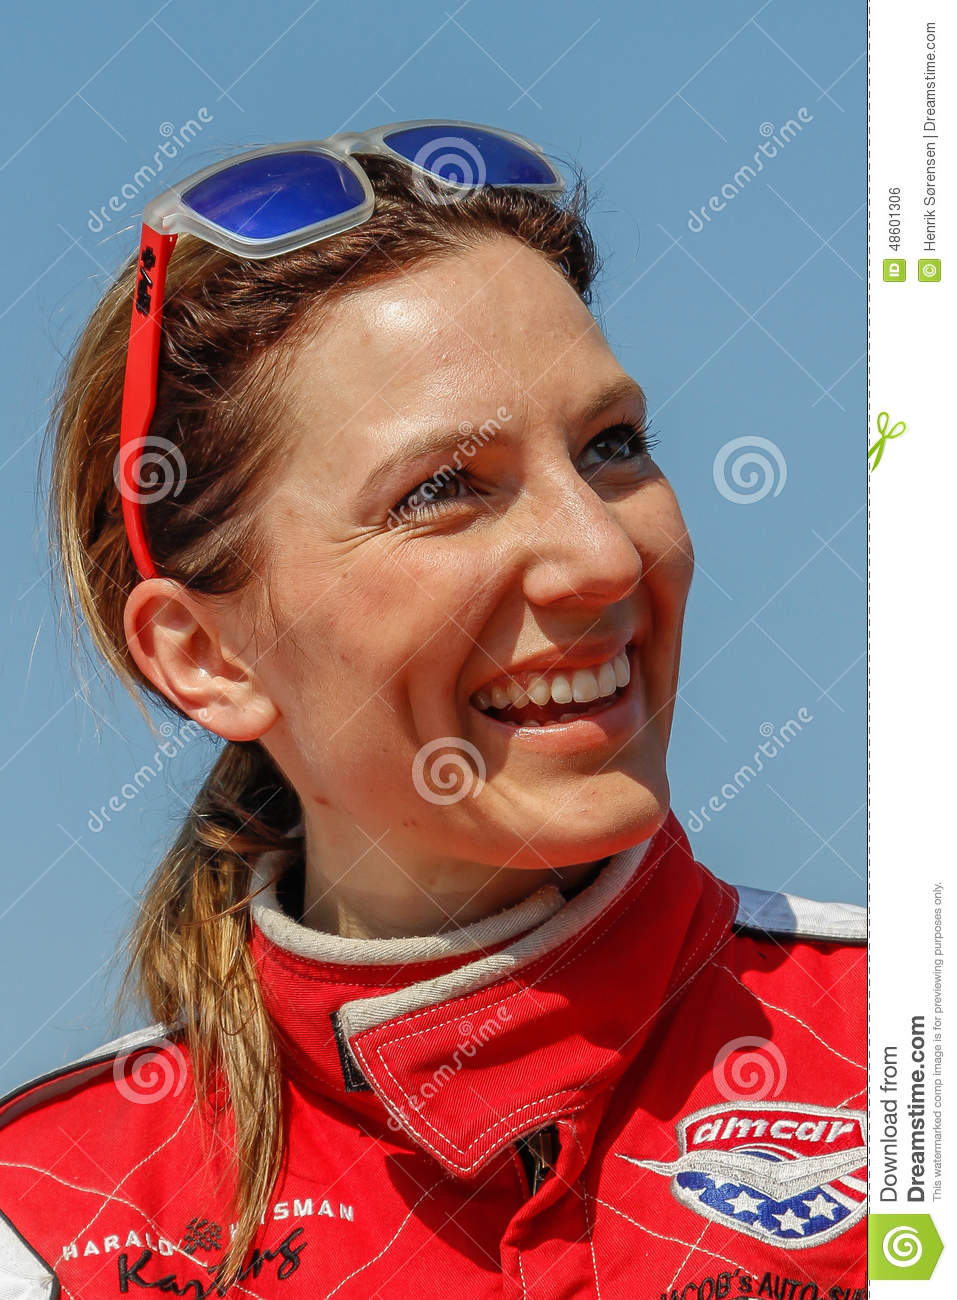 Classic Race Aarhus 2014 - Molly Pettit Editorial Photo - classic-race-aarhus-molly-pettit-denmark-may-norwegian-racing-driver-here-48601306